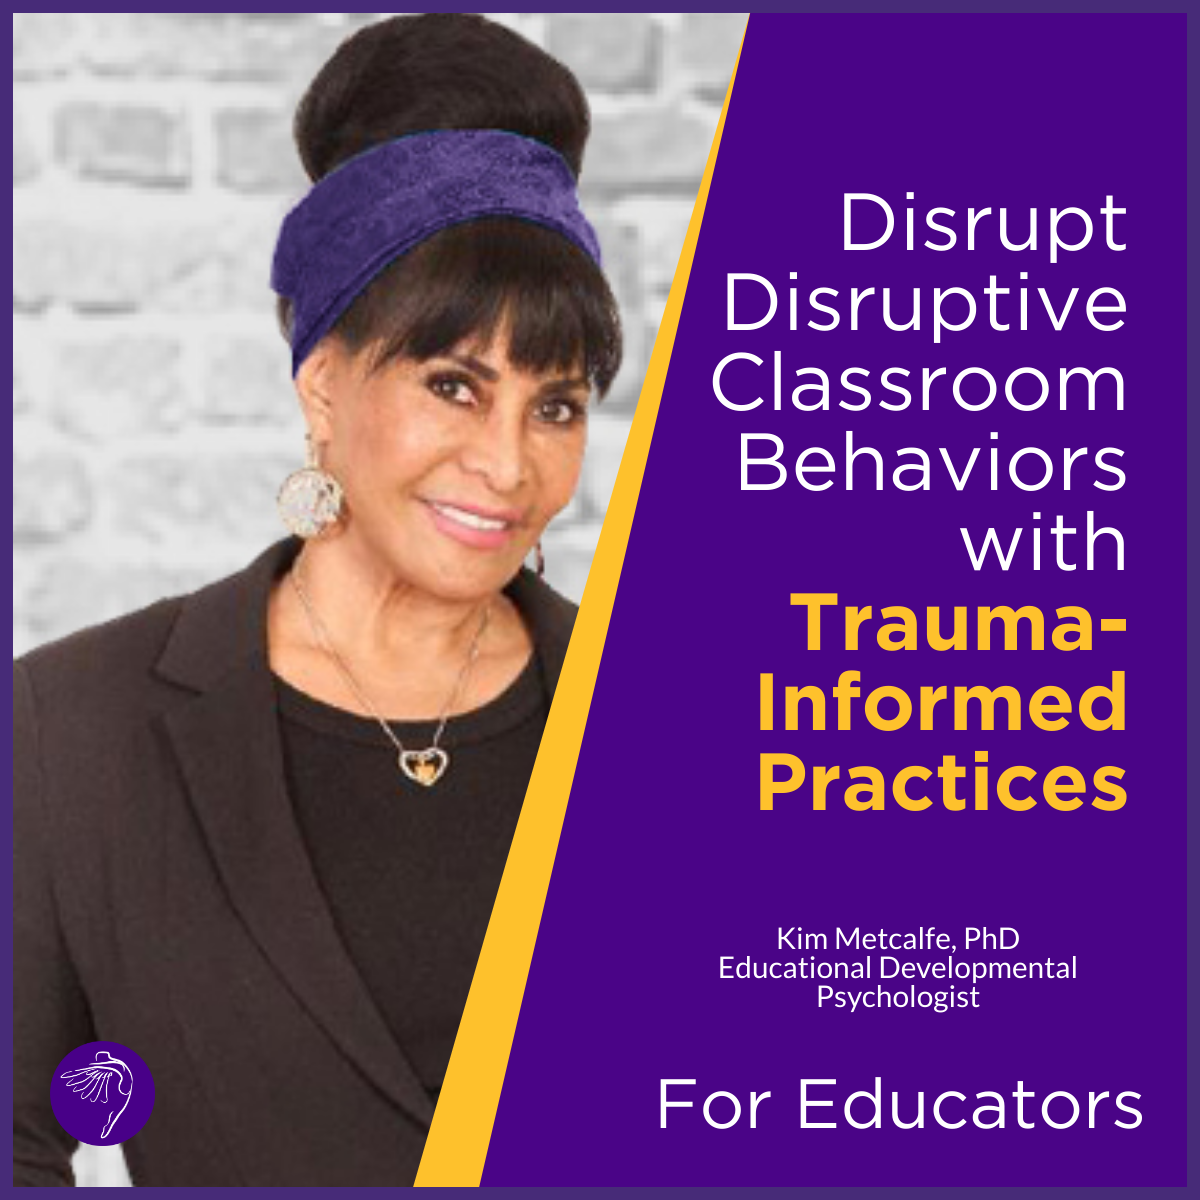 Disrupt Disruptive Classroom Behaviors With Trauma-Informed Practices